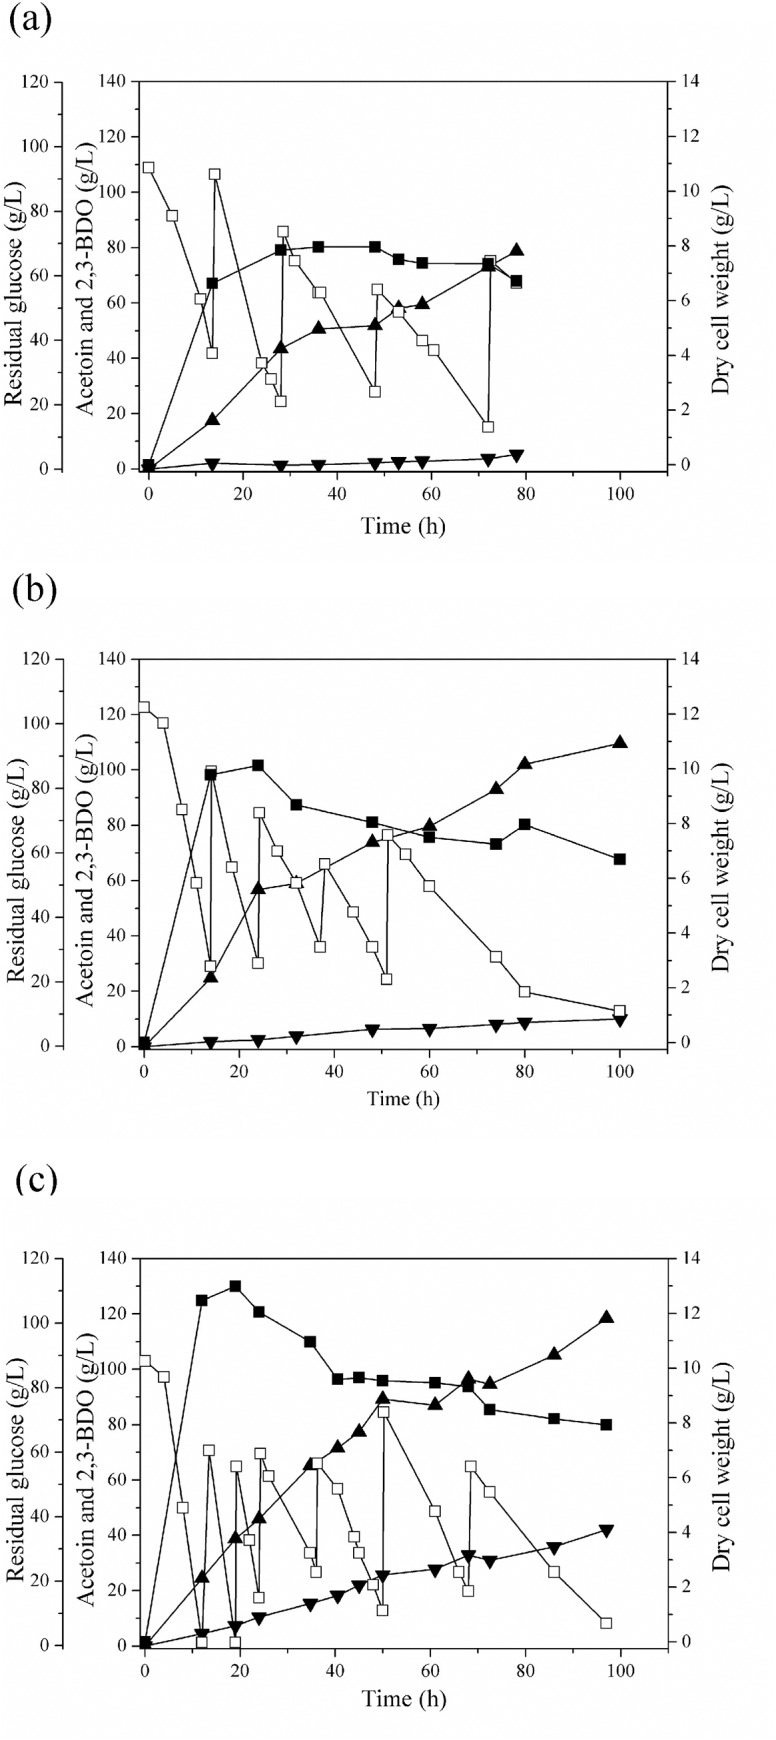 Time course of 2,3-butanediol production by K . oxytoca M1 at different agitation speeds. (a) 200 rpm, (b) 300 rpm, and (c) 400 rpm. Symbols indicate dry cell weight (■), residual glucose (□), 2,3-BDO (▲), and acetoin (▼).